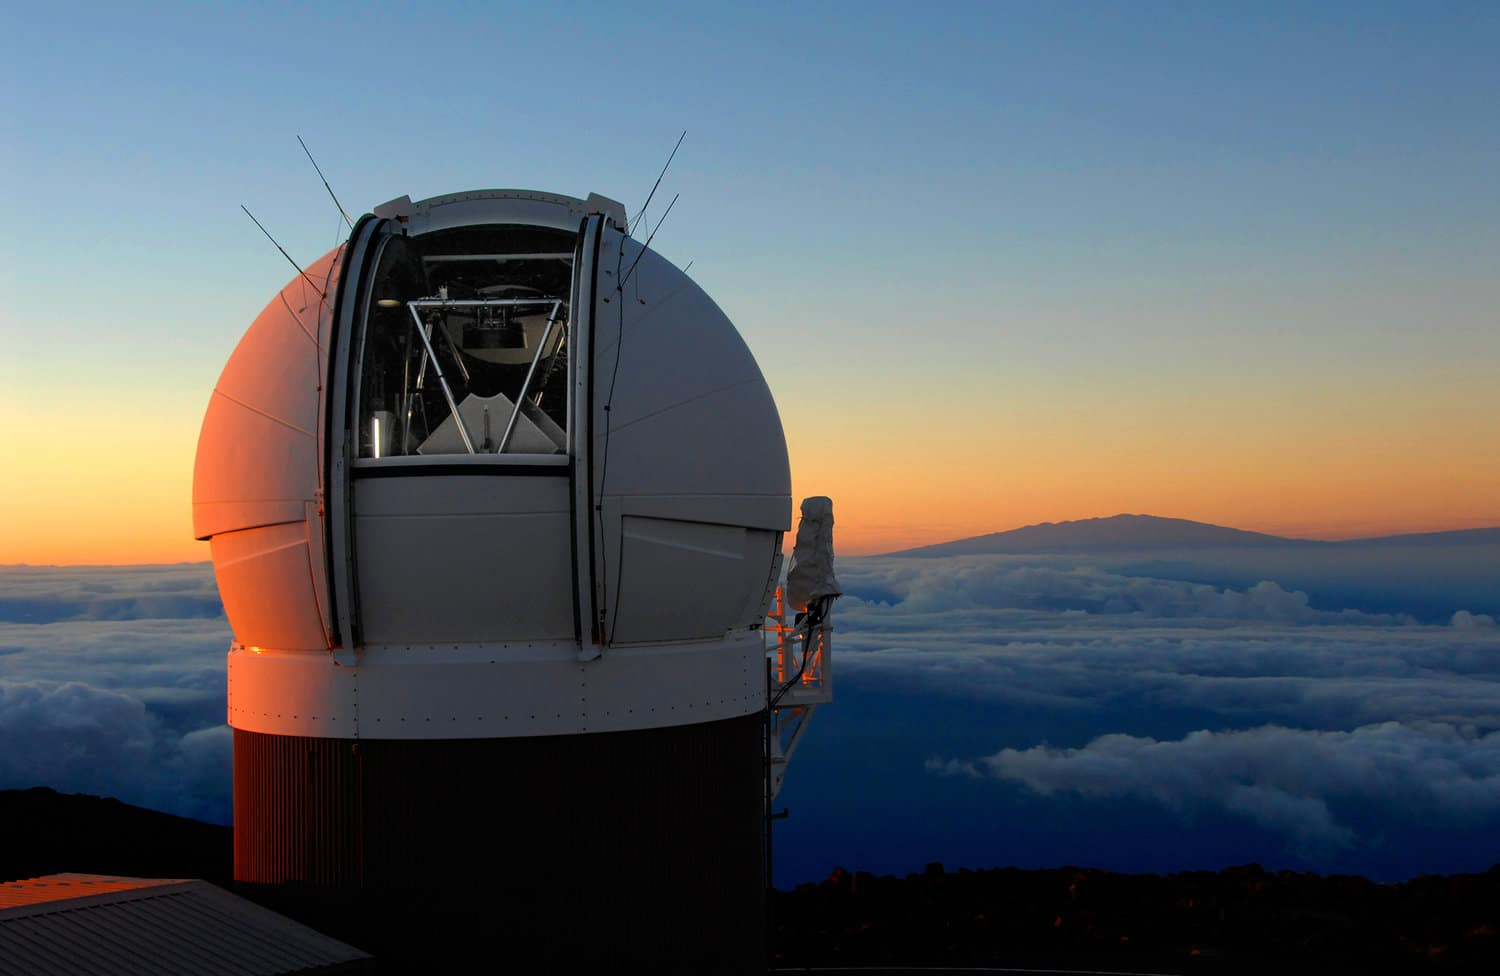 A telescope in Hawaii first spotted the asteroid. Rob Ratkowski/Courtesy of Pan-STARRS